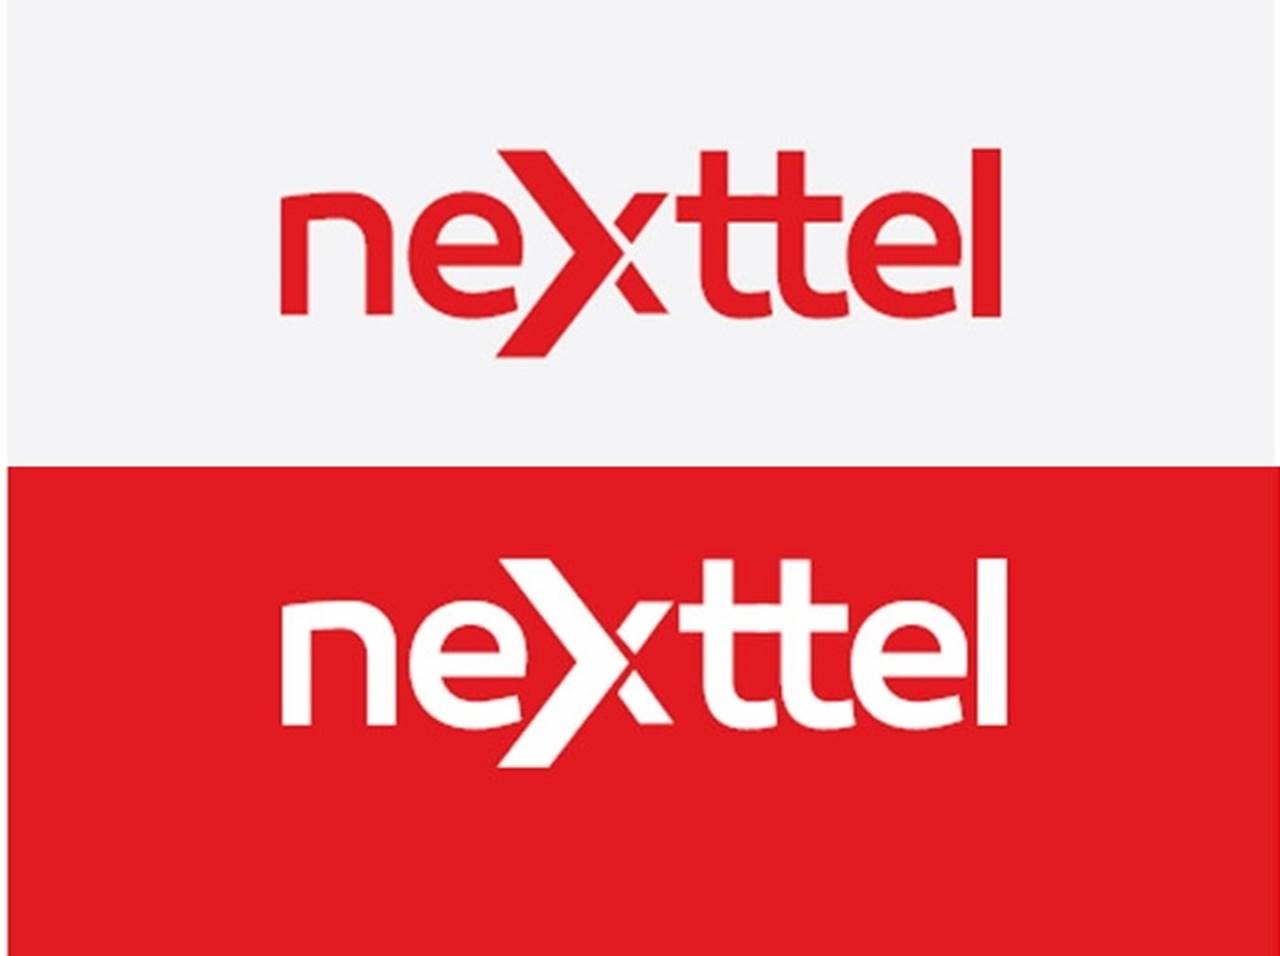 Nexttel OhHa: 1.12GB and Free Nexttel Calls For 500Frs (30 Days)